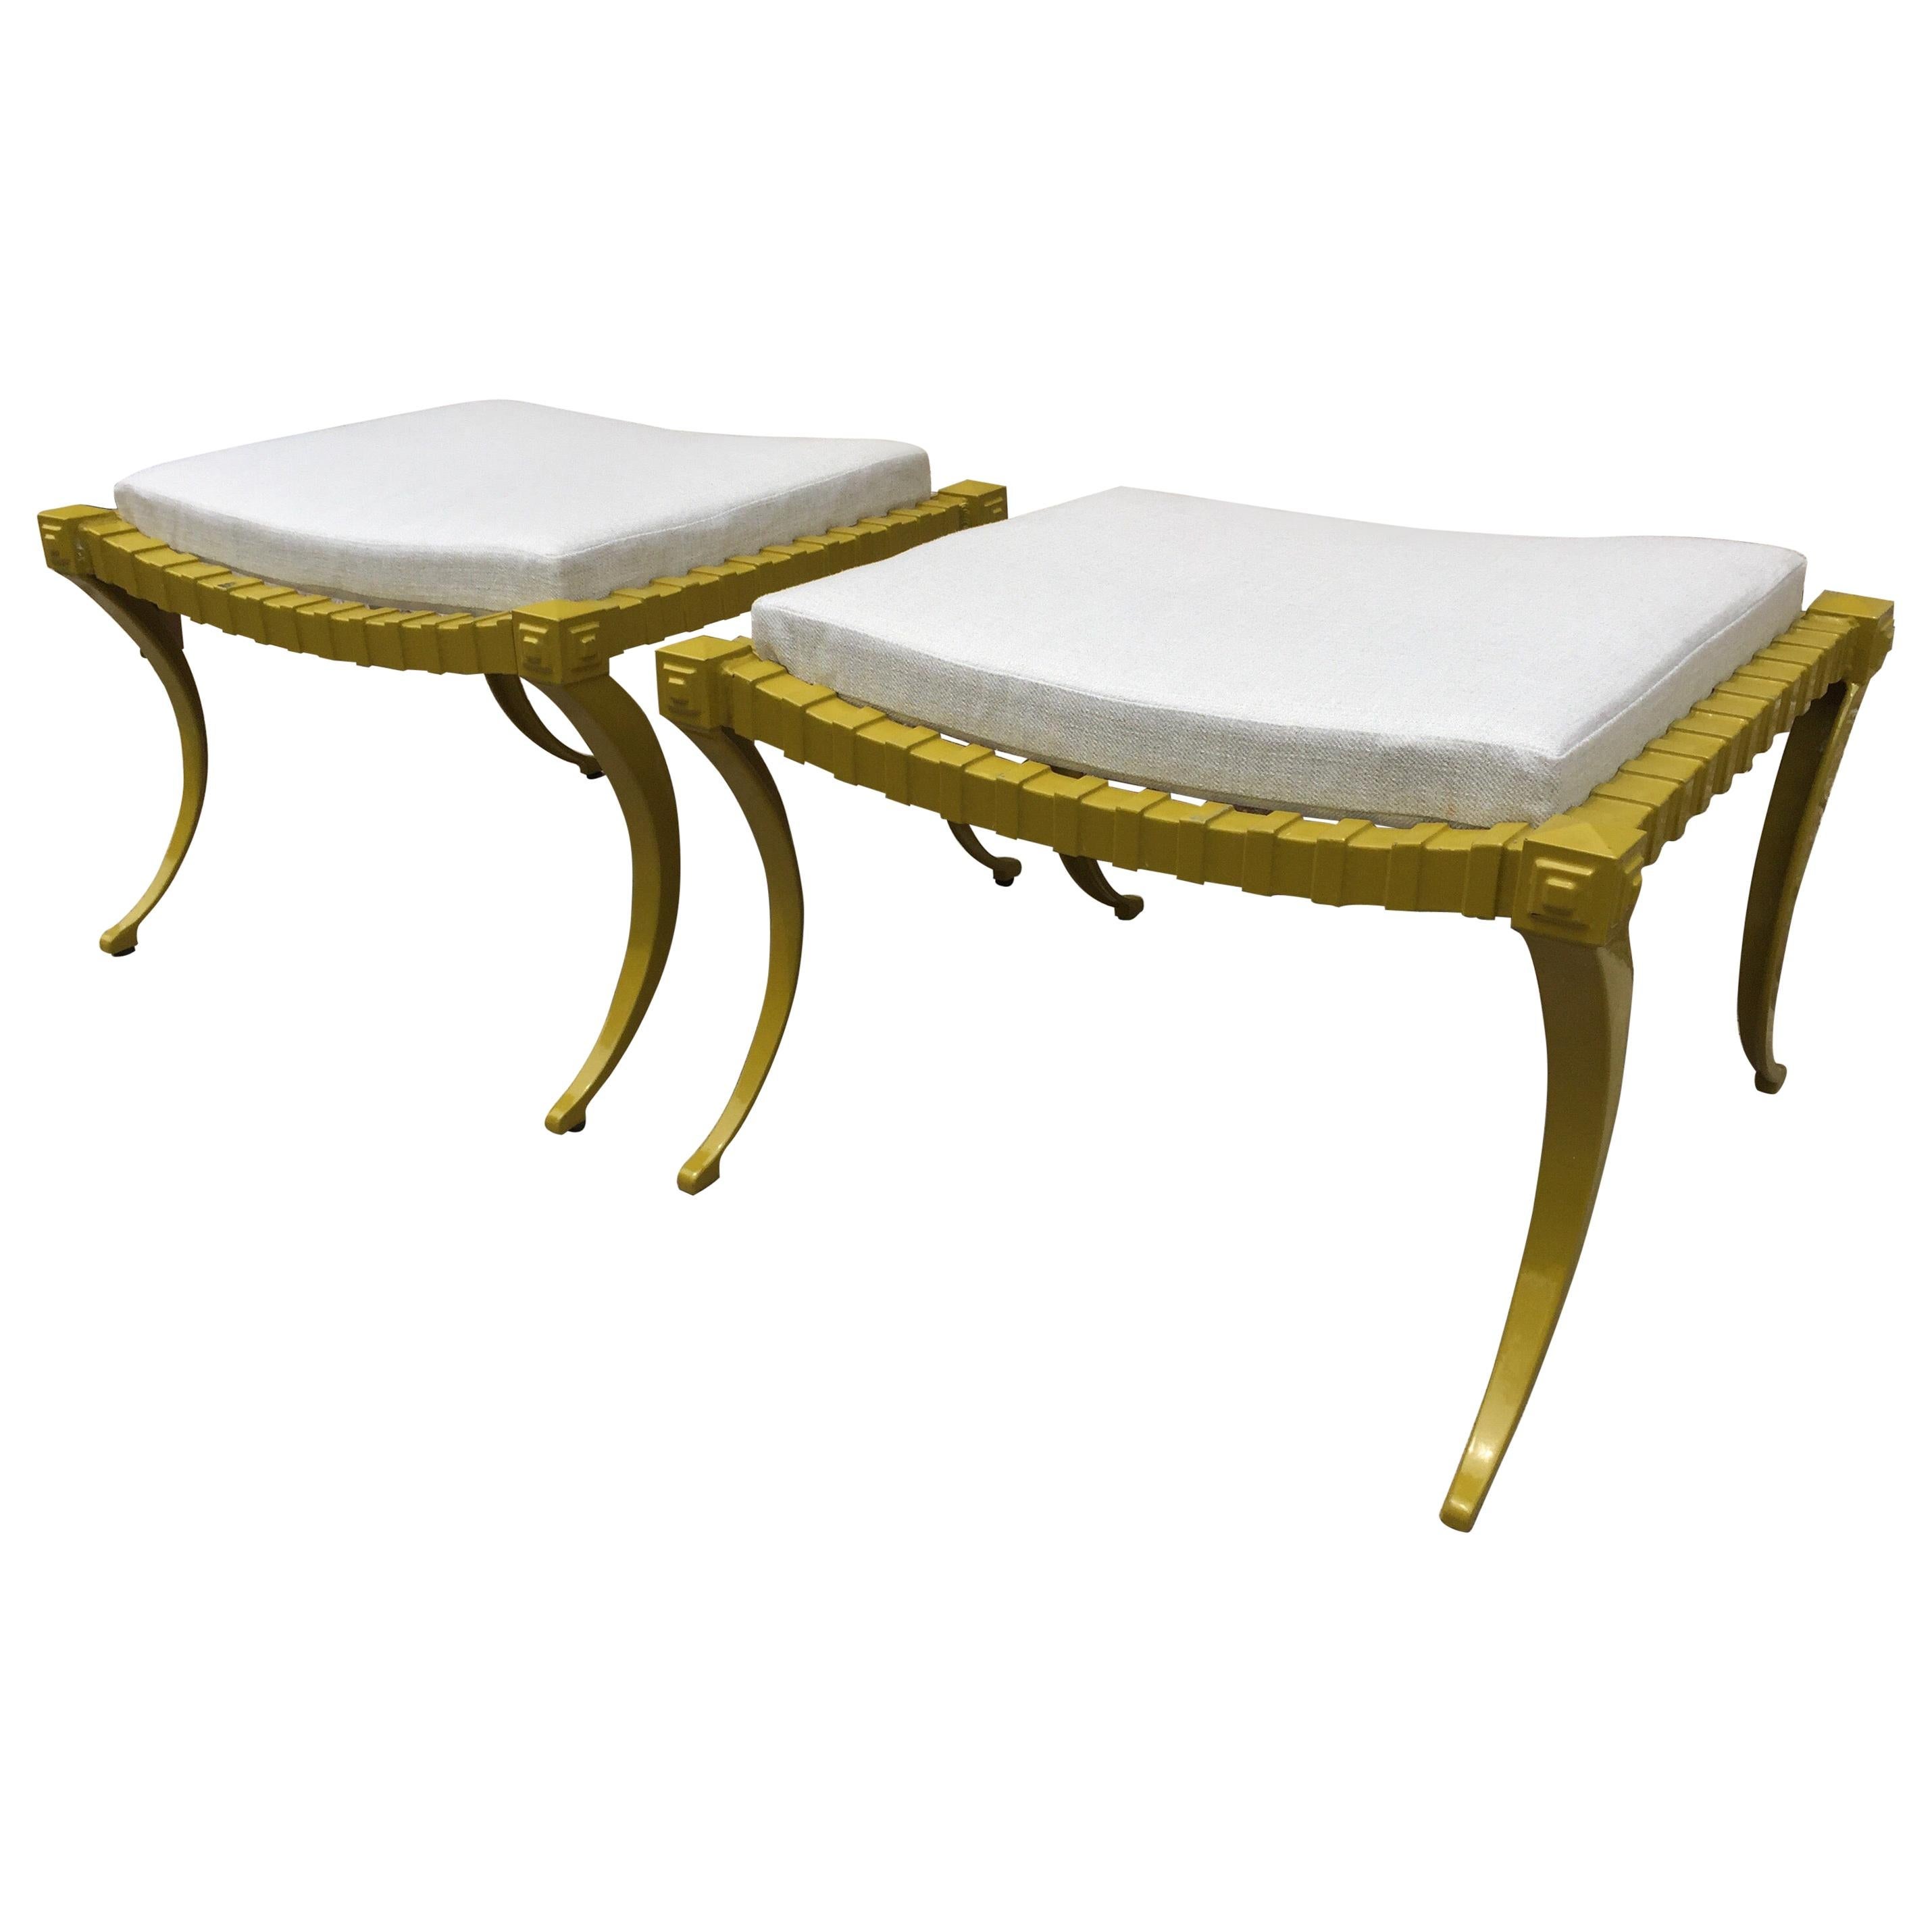 Thinline Aluminum Ottomans/ Benches in Chartreuse Green